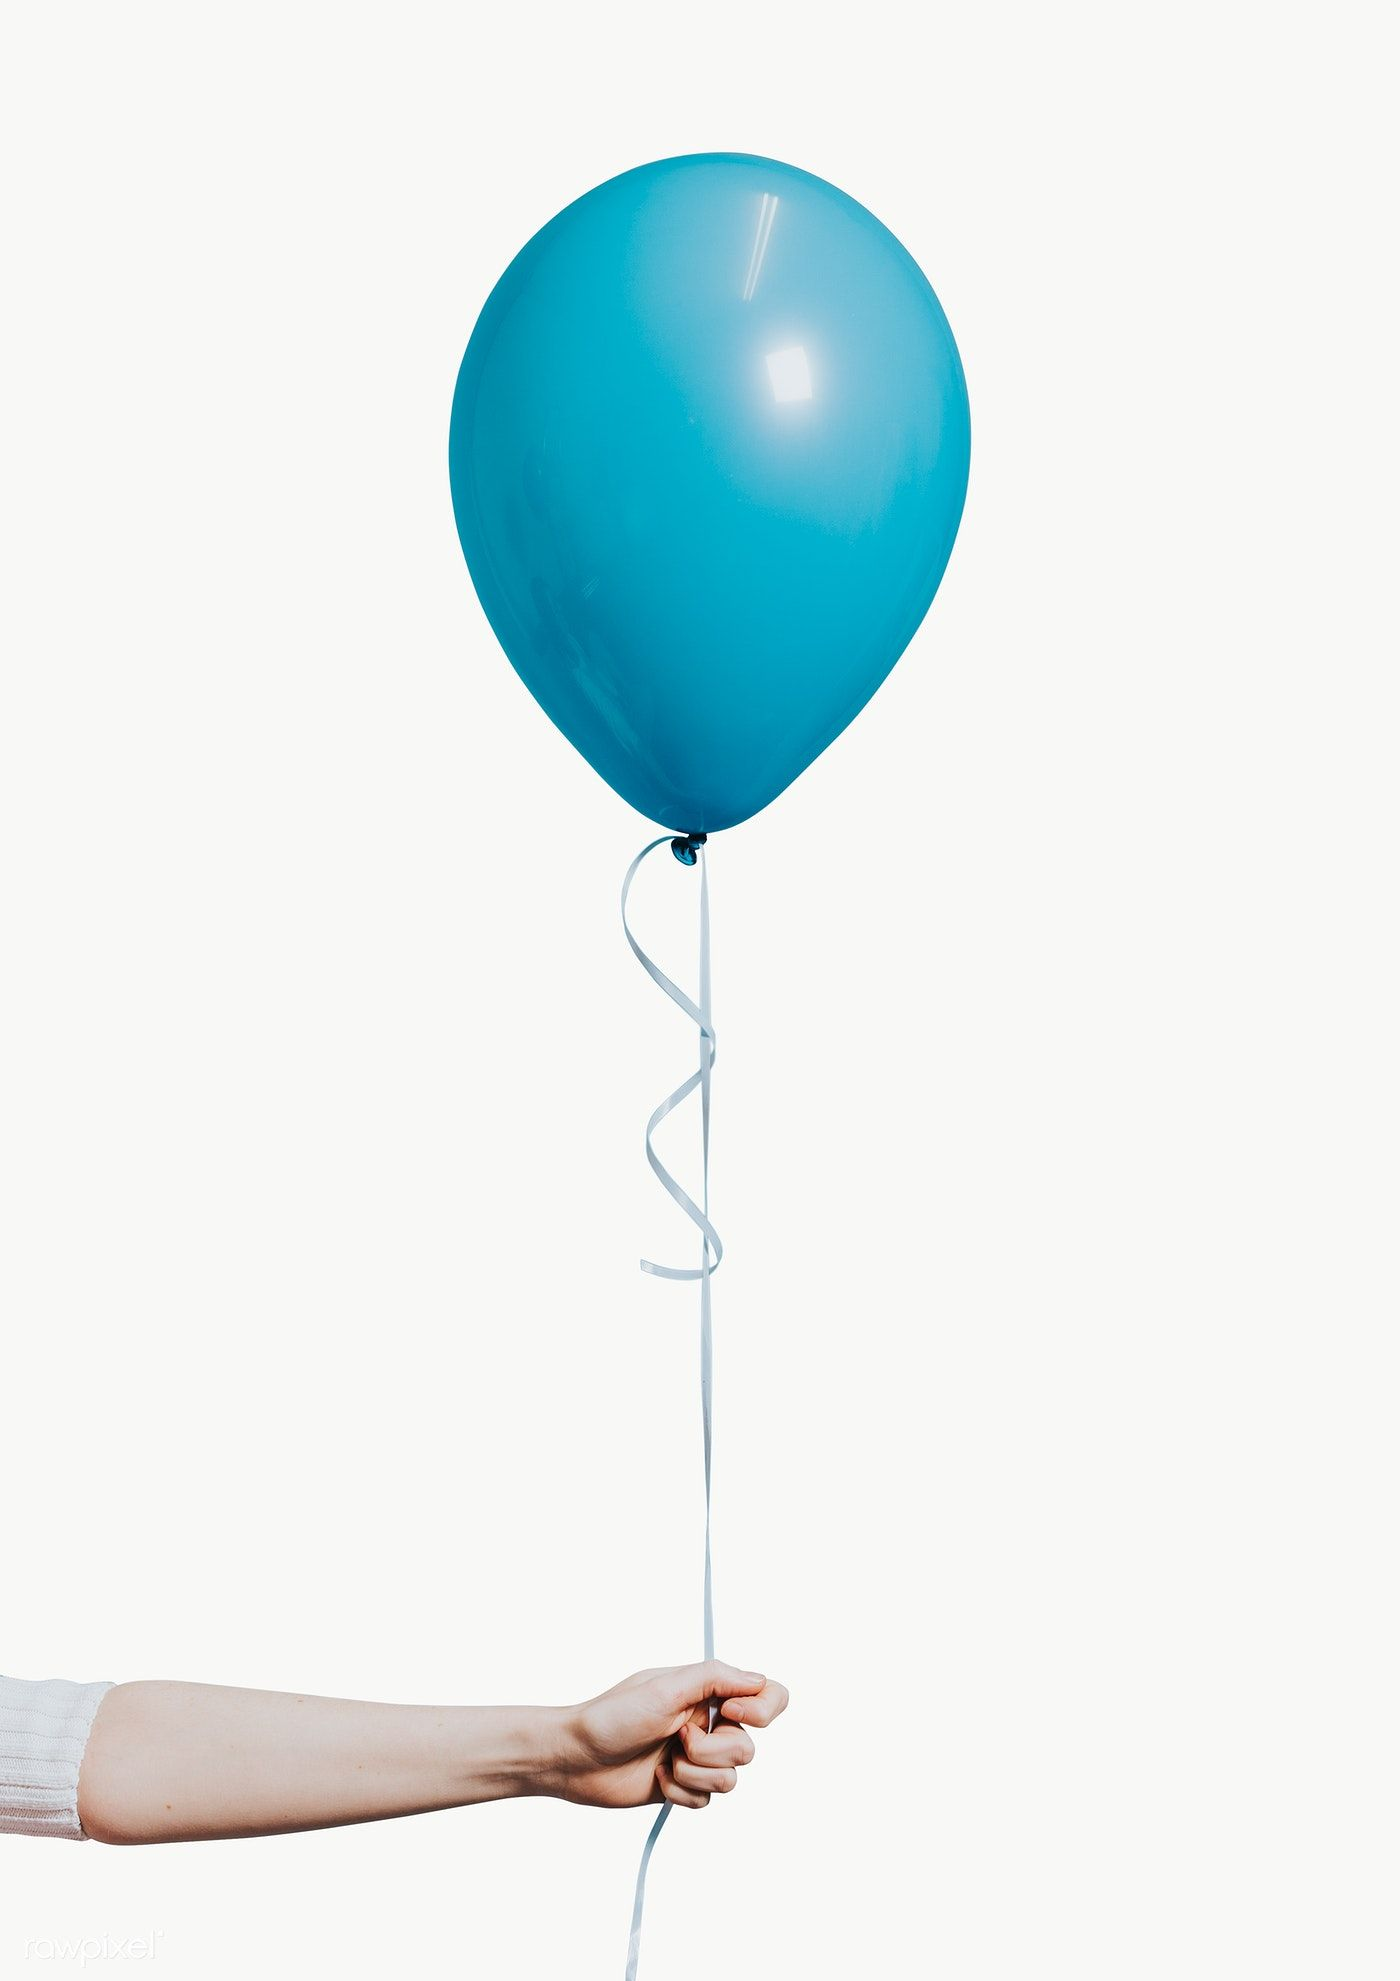 Girl Holding A Pastel Blue Balloon Free Image By Rawpixel Com Felix Blue Balloons Girl Holding Balloons Balloons